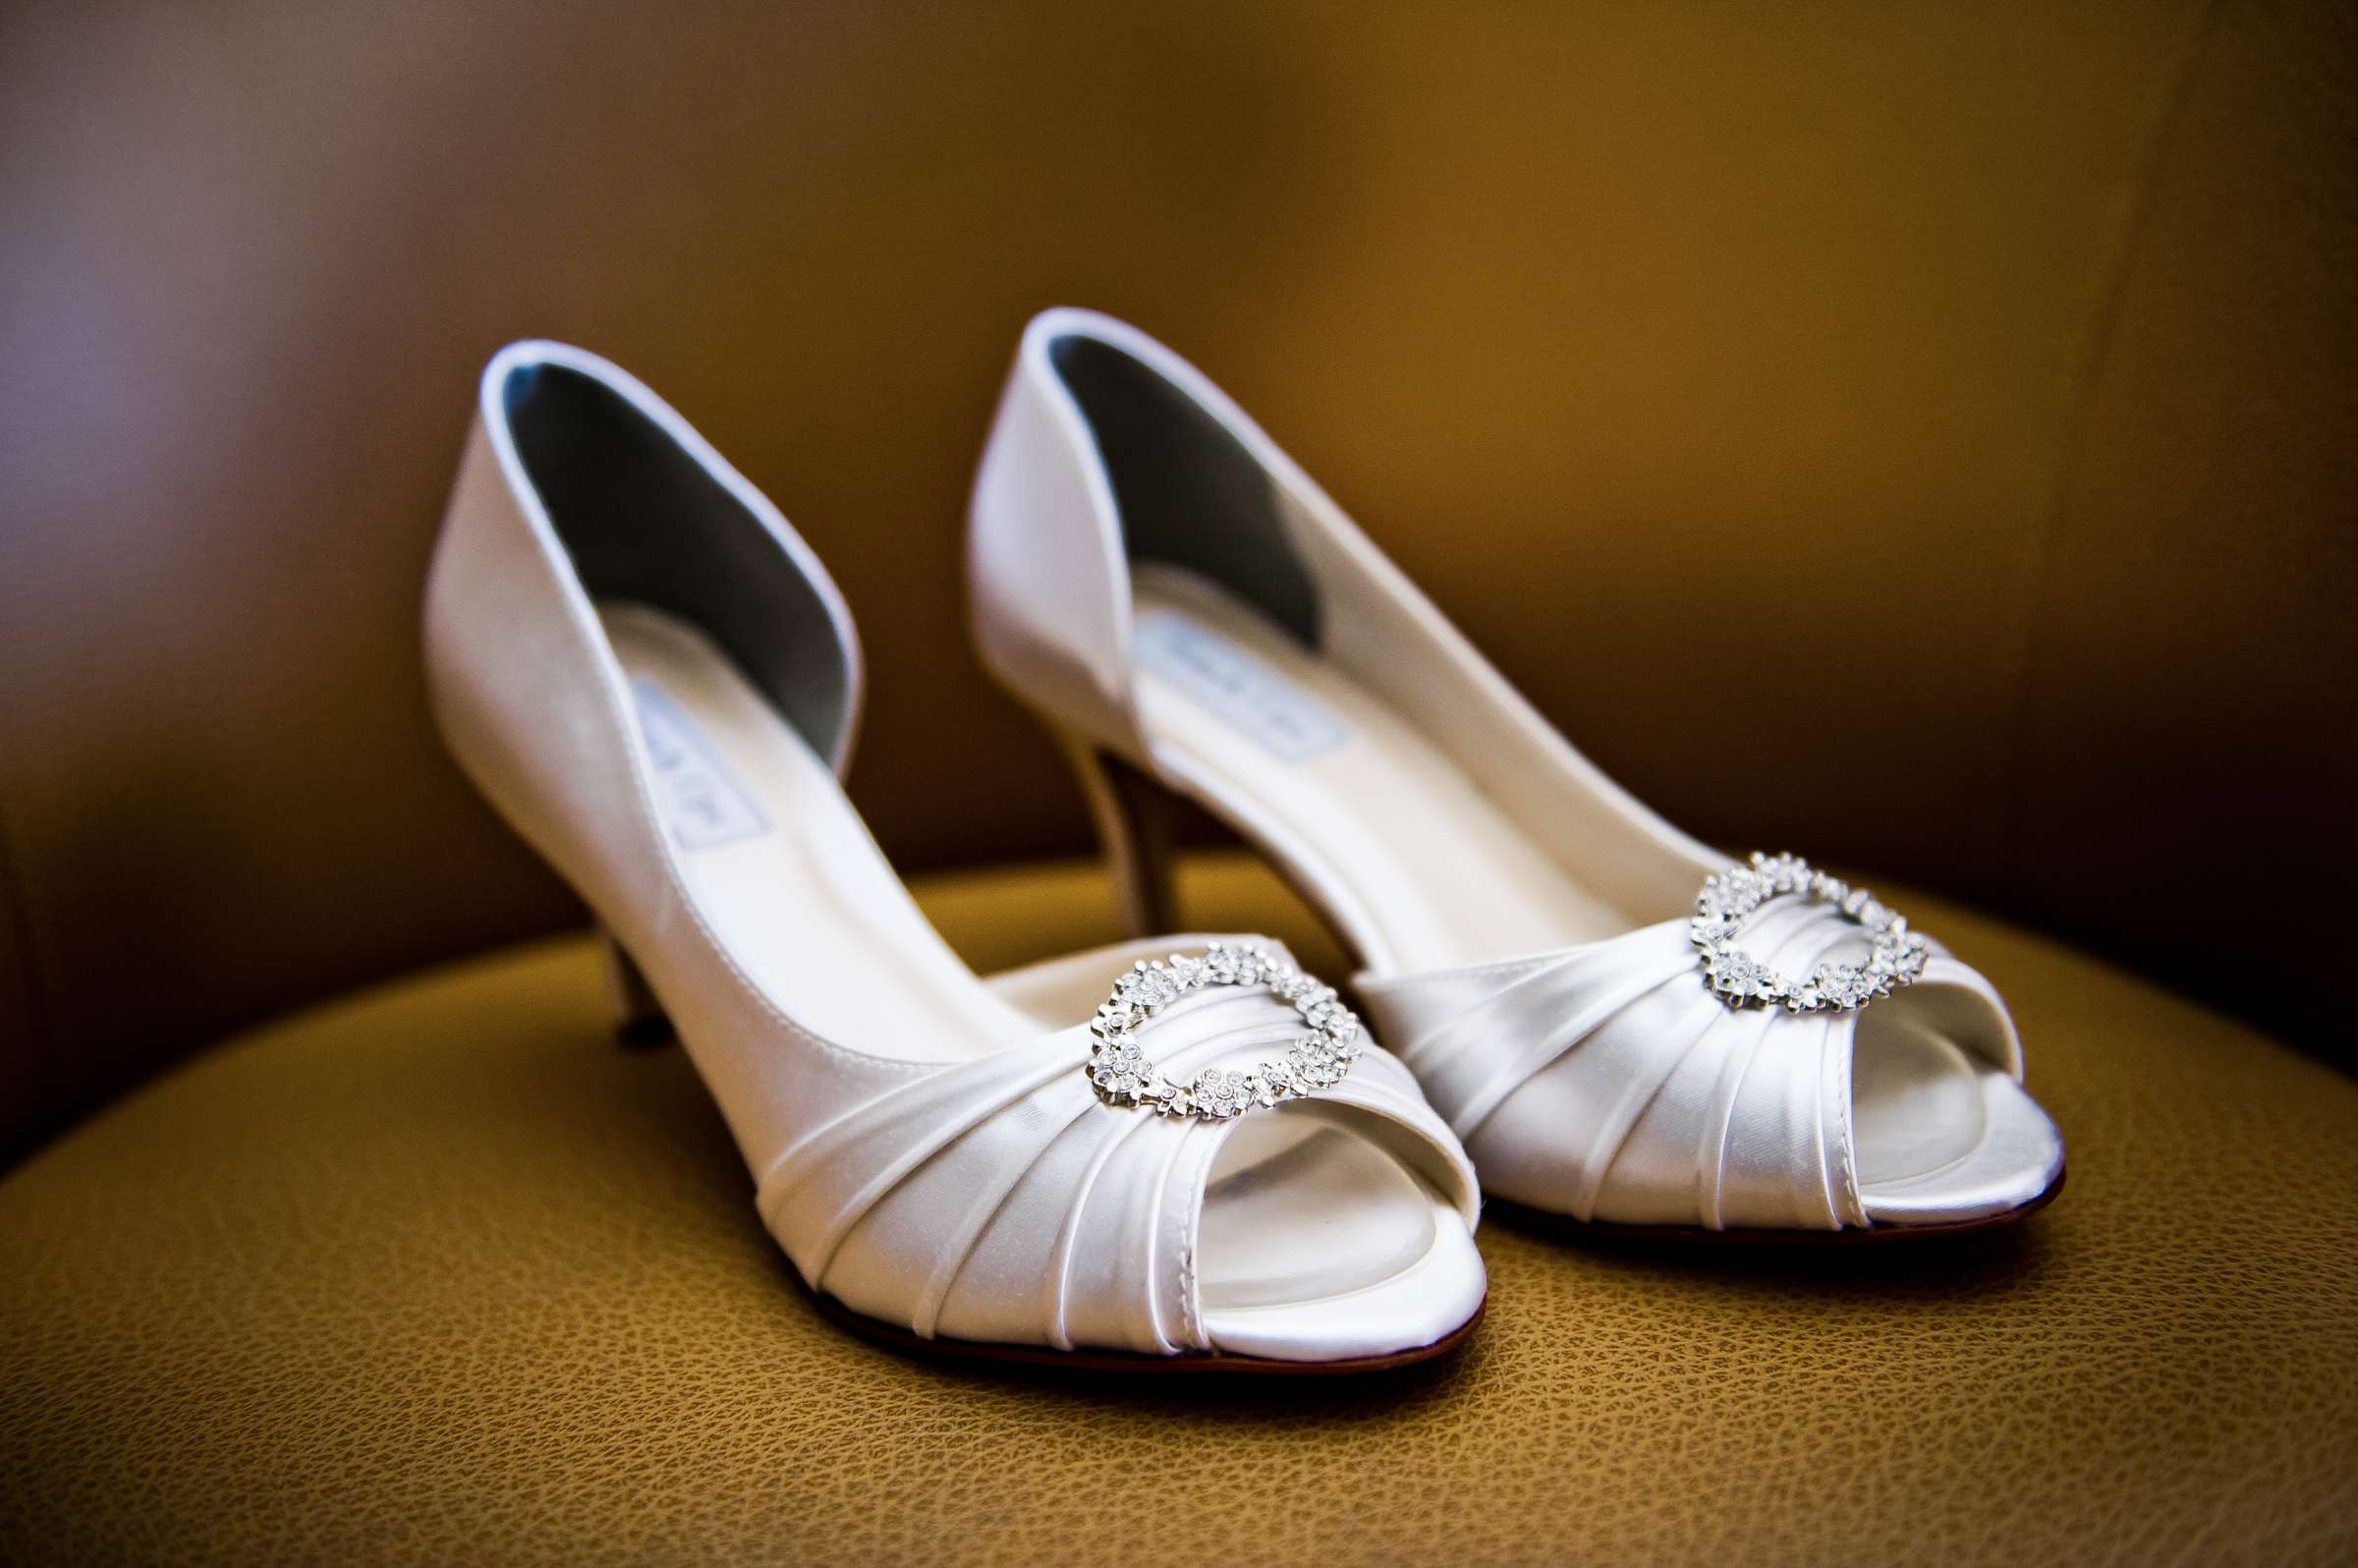 Fairmont Grand Del Mar Wedding, Angela and Tom Wedding Photo #19 by True Photography